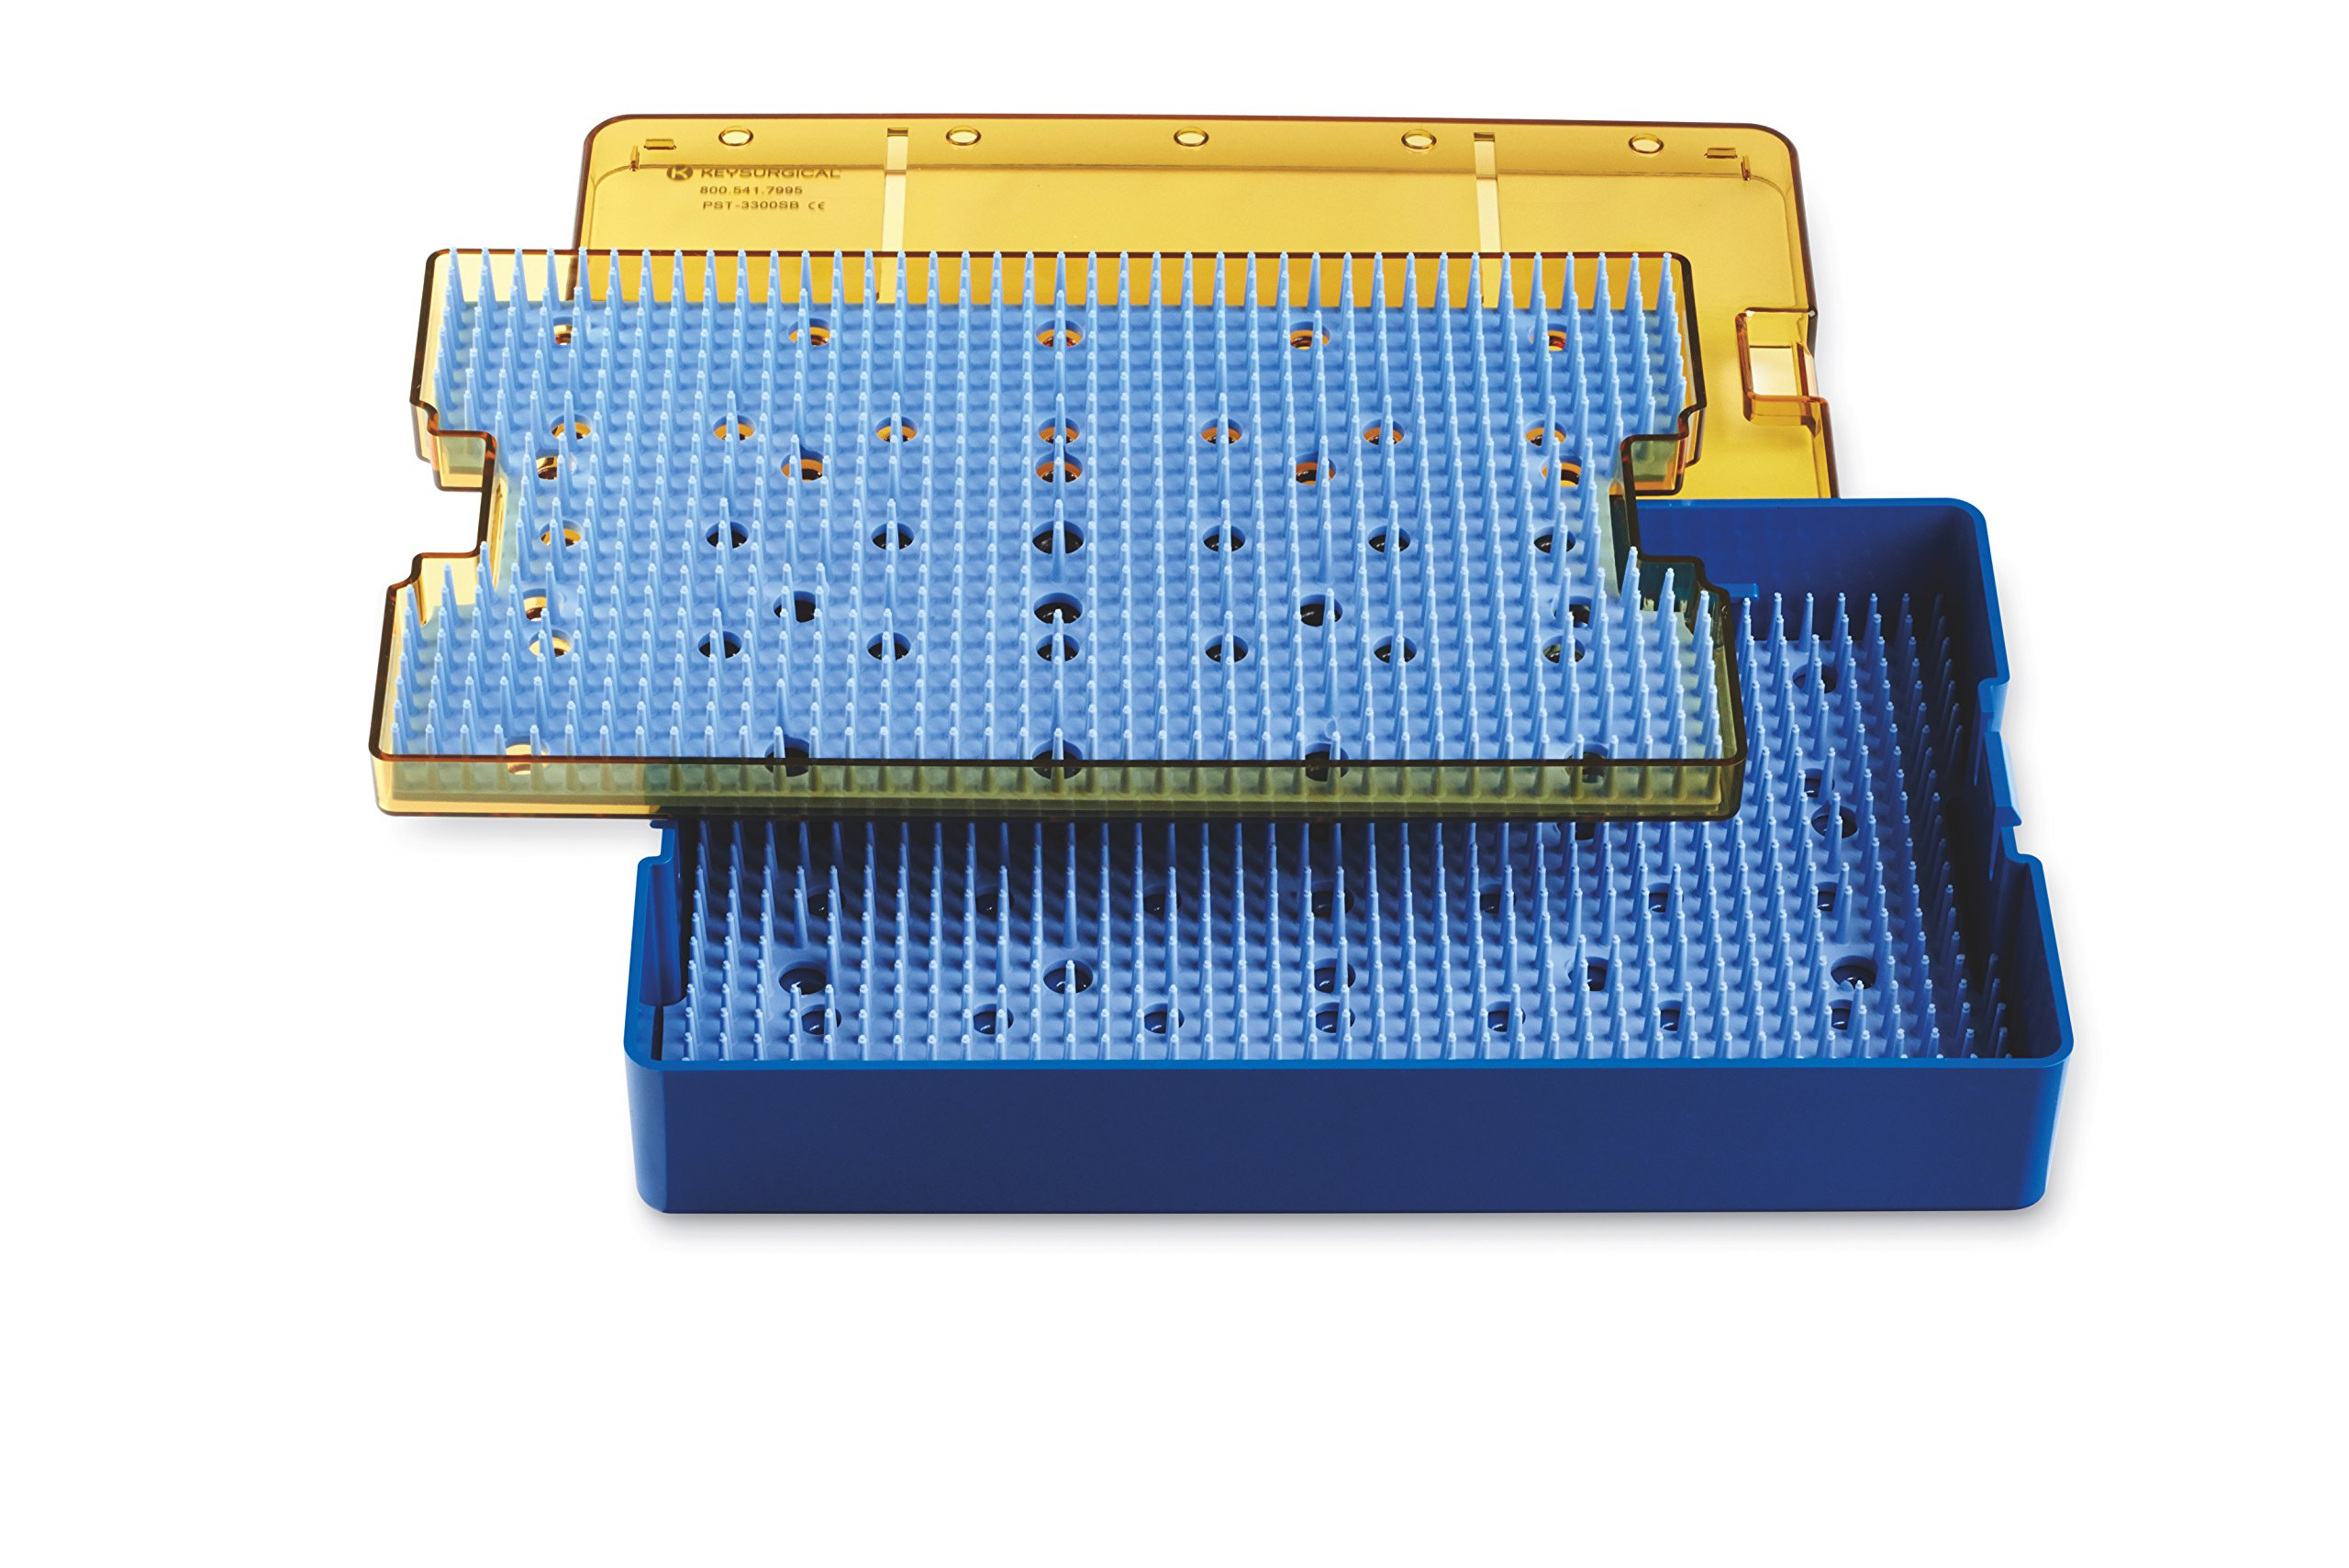 Key Surgical PST-3300SB Plastic Sterilization Tray, 10'' x 6'' x 1.5'' Base, Lid, and Silicone Finger Mat Insert